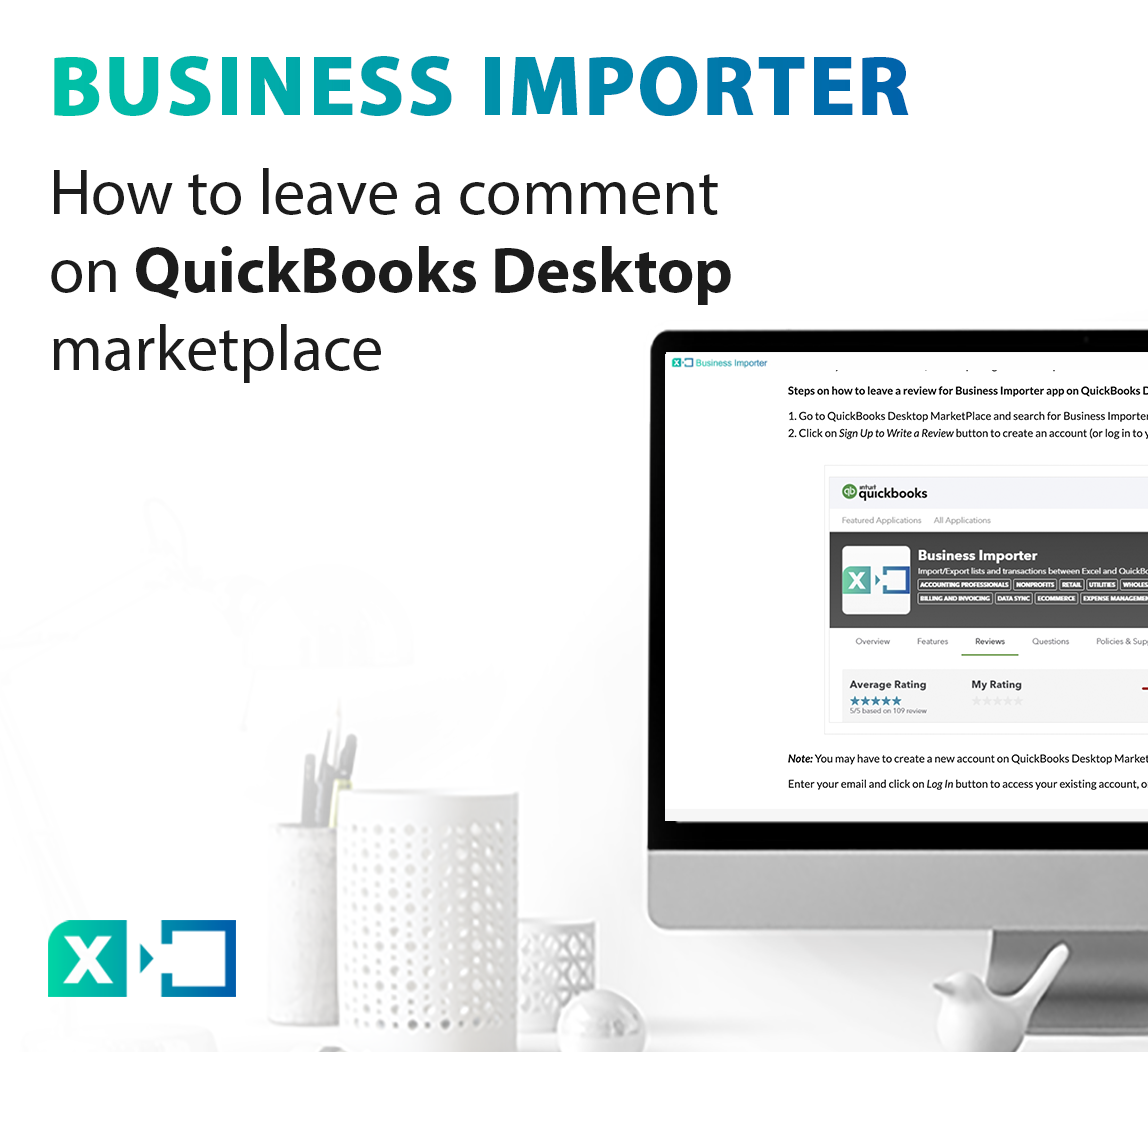 leave a comment on QuickBooks Desktop marketplace